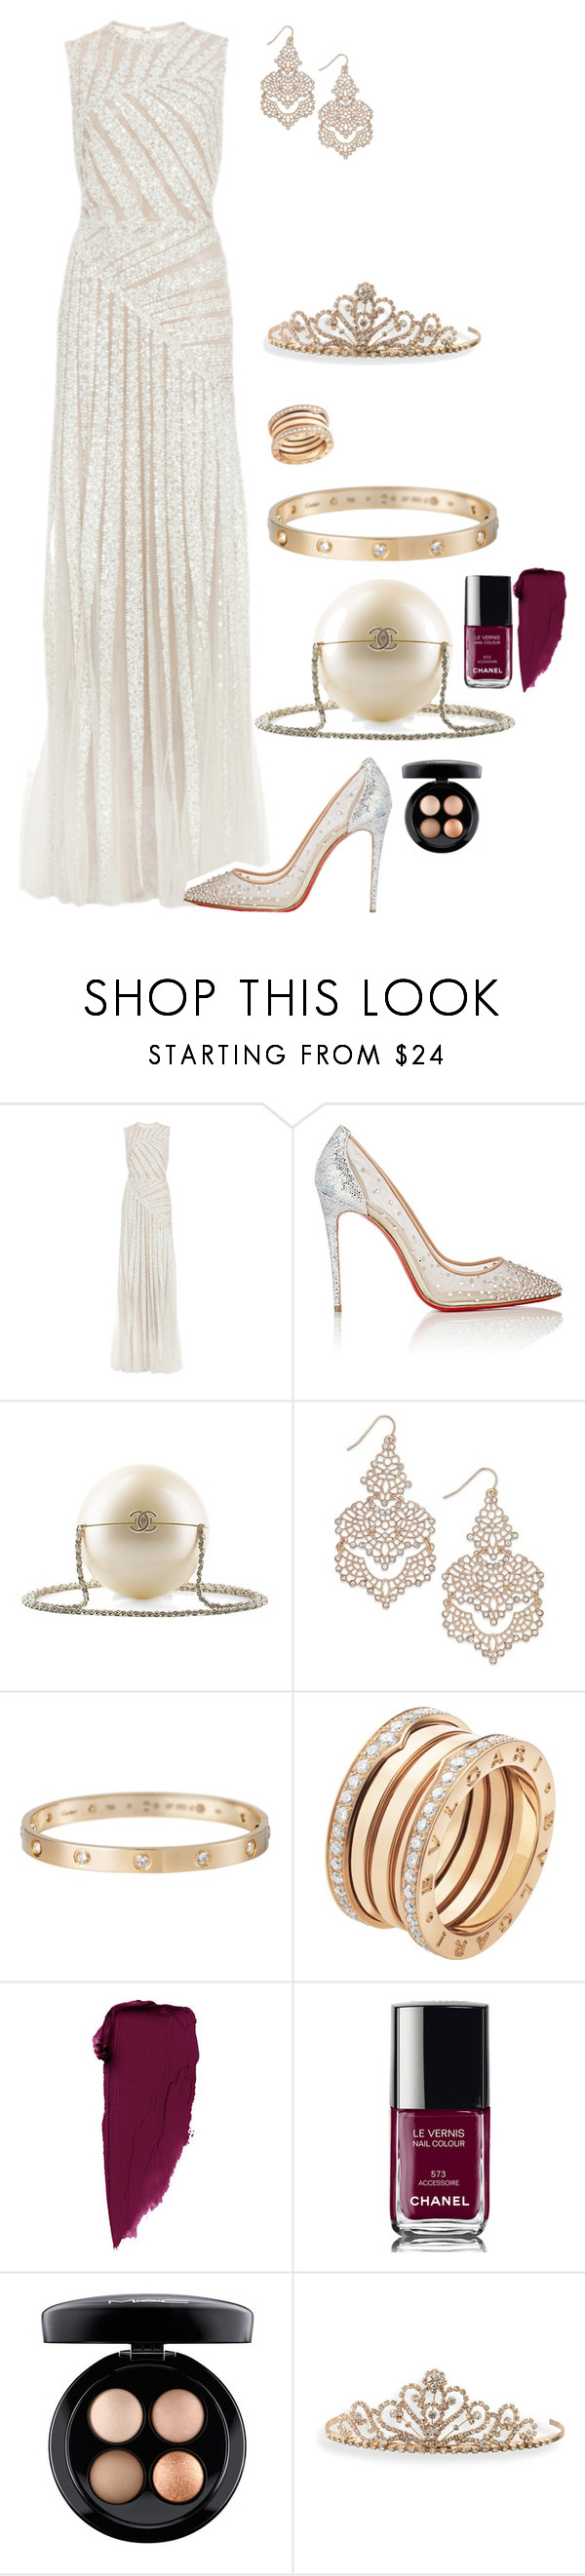 """""""Queen"""" by roney121 ❤ liked on Polyvore featuring Elie Saab, Christian Louboutin, Chanel, INC International Concepts, Cartier, Bulgari, MAC Cosmetics and BillyTheTree"""